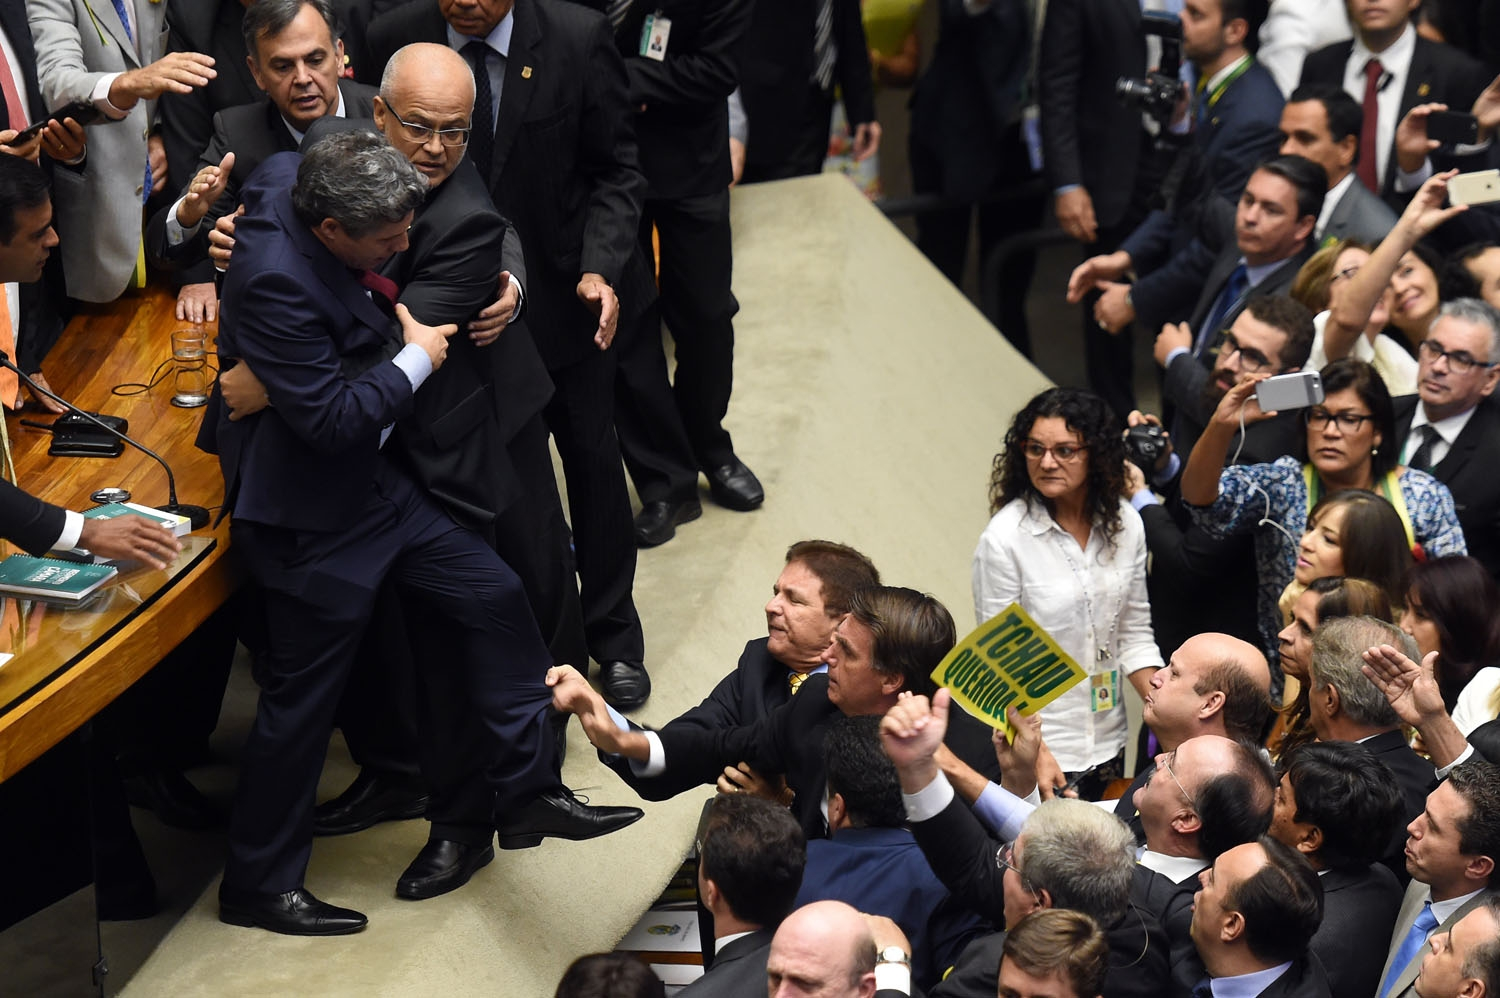 Brazilian Deputies fight during a session to discuss the admissibility of the impeachment request of President Dilma Rousseff in Brasilia on April 17, 2016.